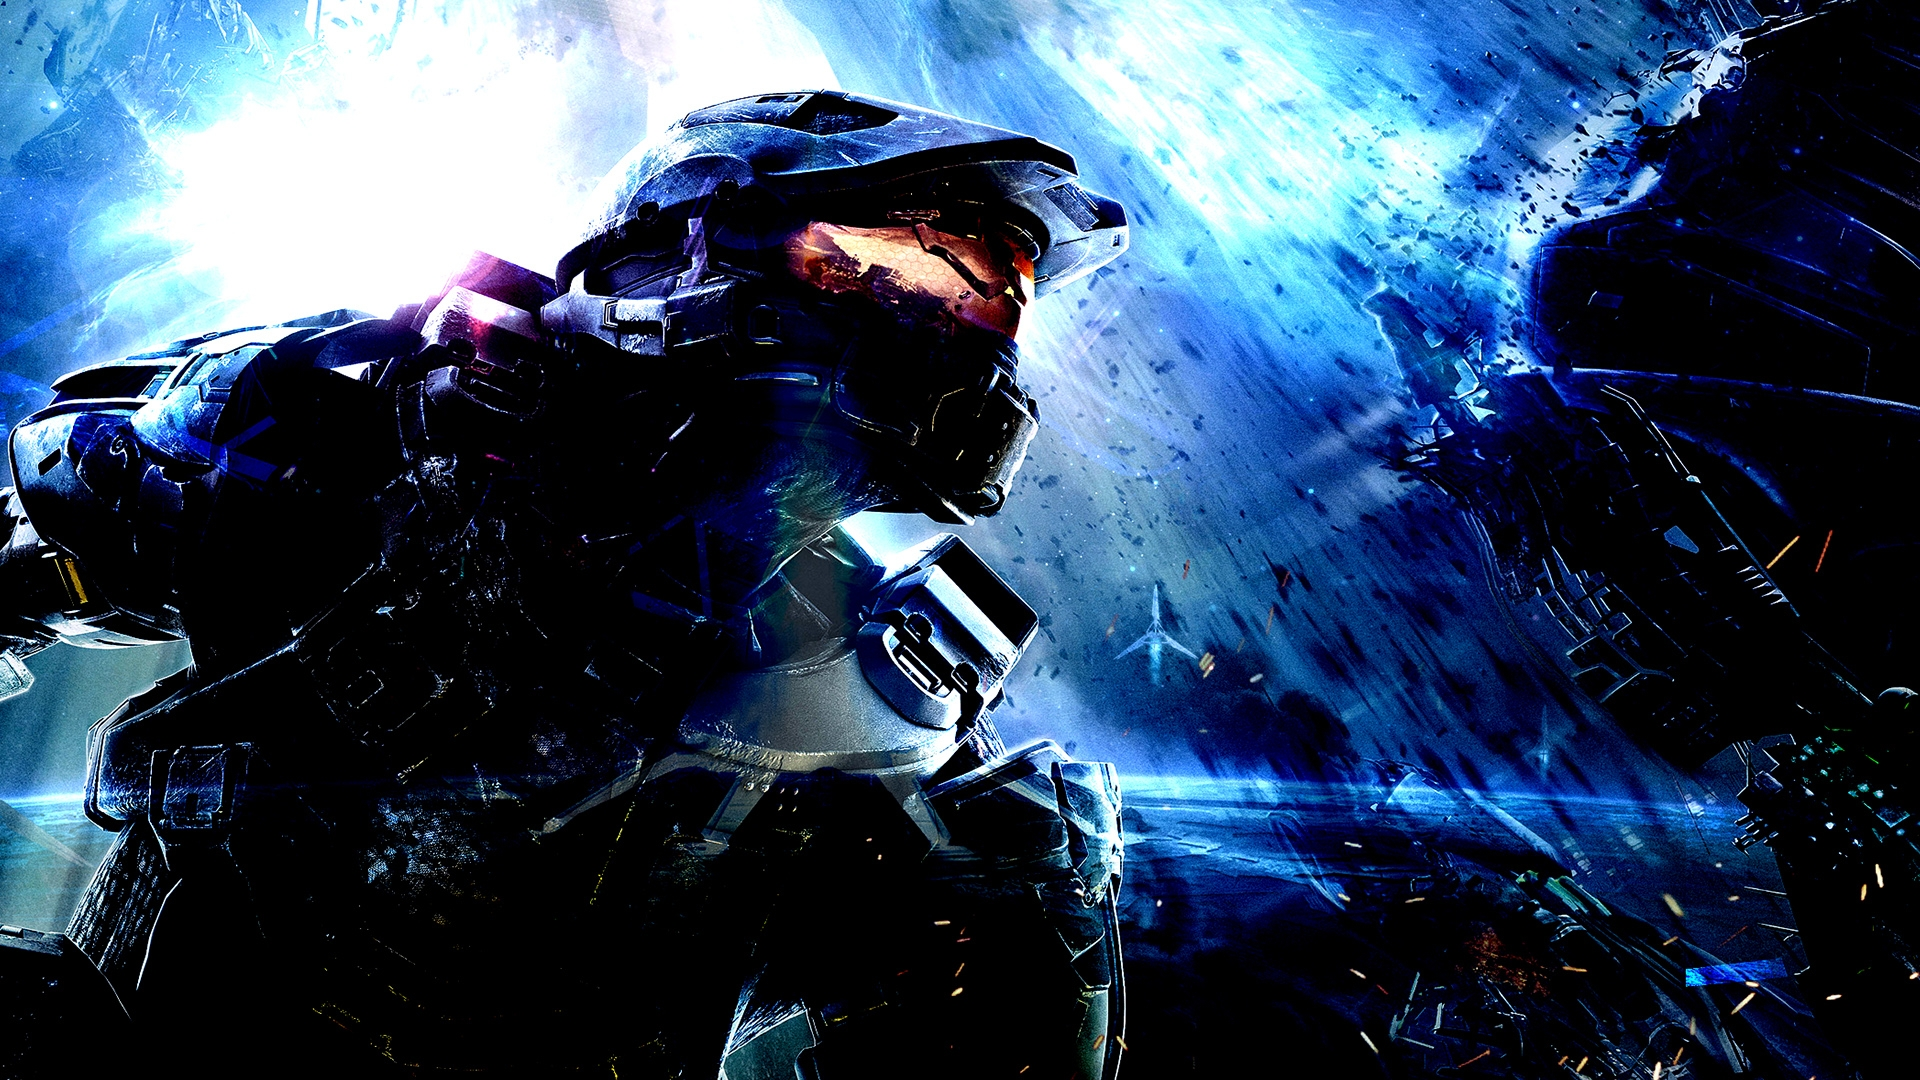 Halo 4 E3 Wallpaper   Wallpaper Pictures Gallery 1920x1080